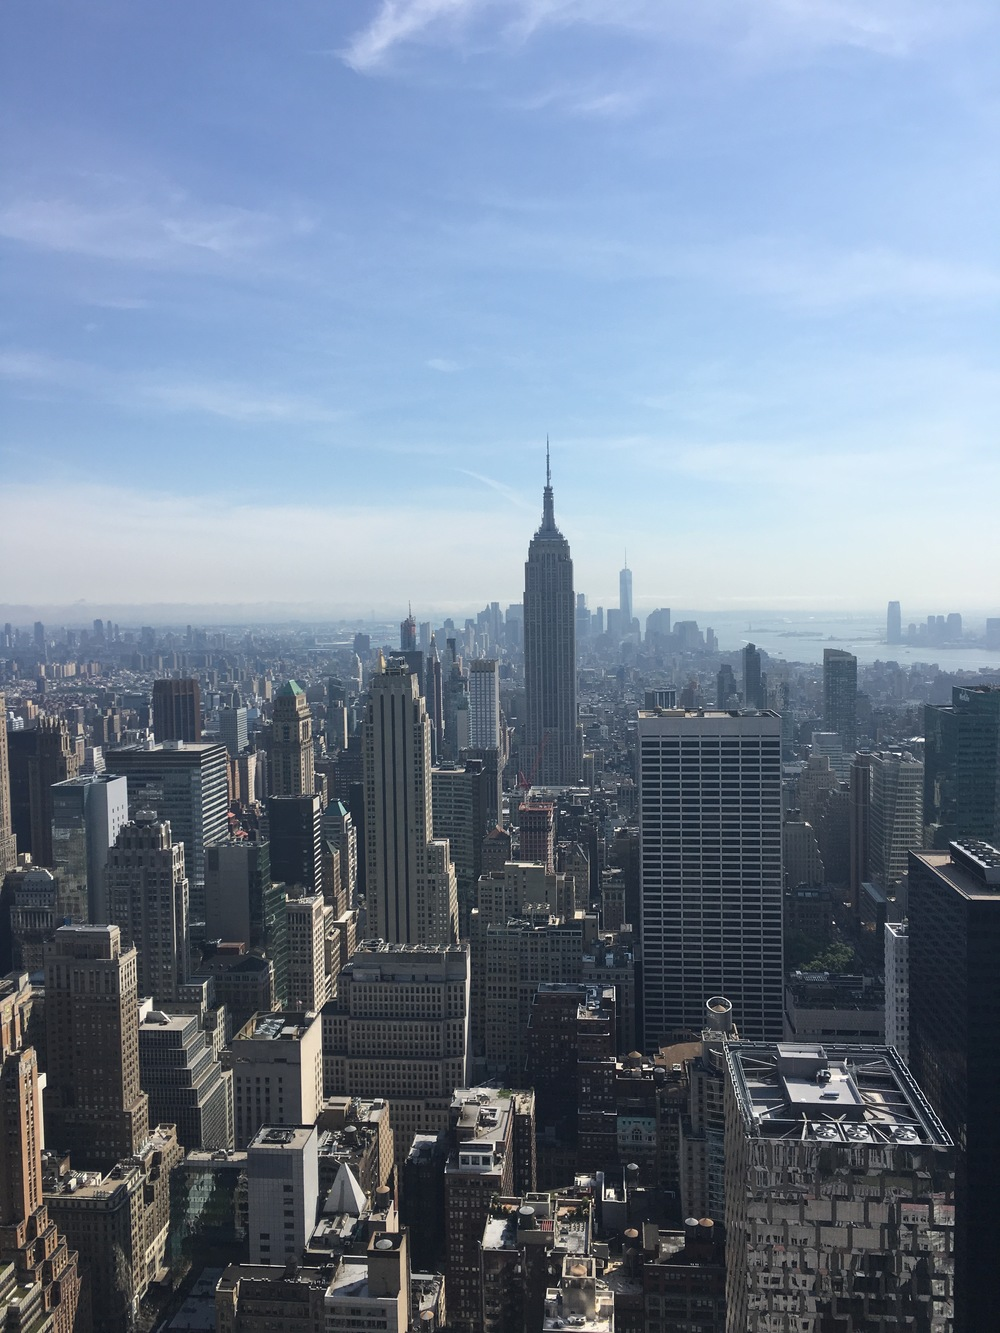 Top of the Rock Manhattan New York City Skyline1.jpg